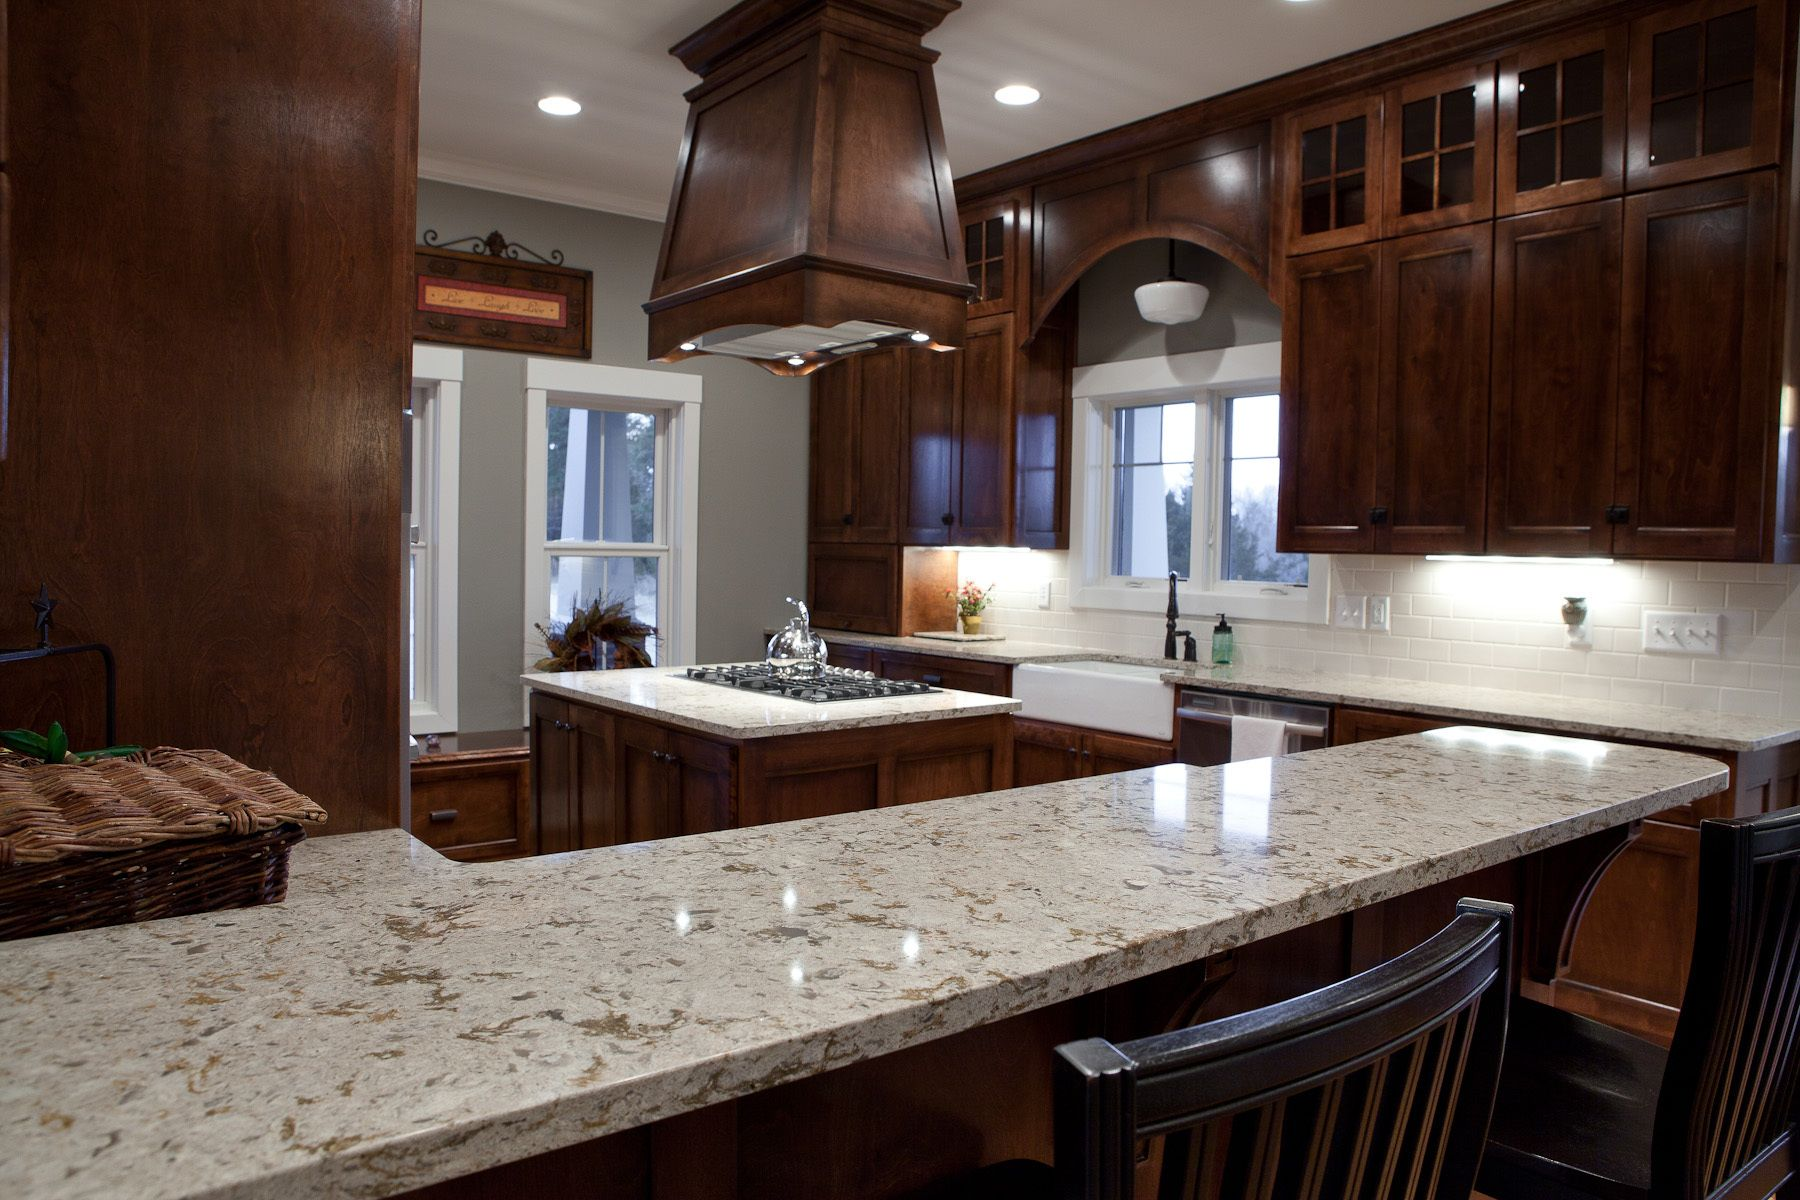 Exceptional Fantastic Wooden Range Hood Over Island With Black Stove Top And White  Cambria Quartz Granite Countertop